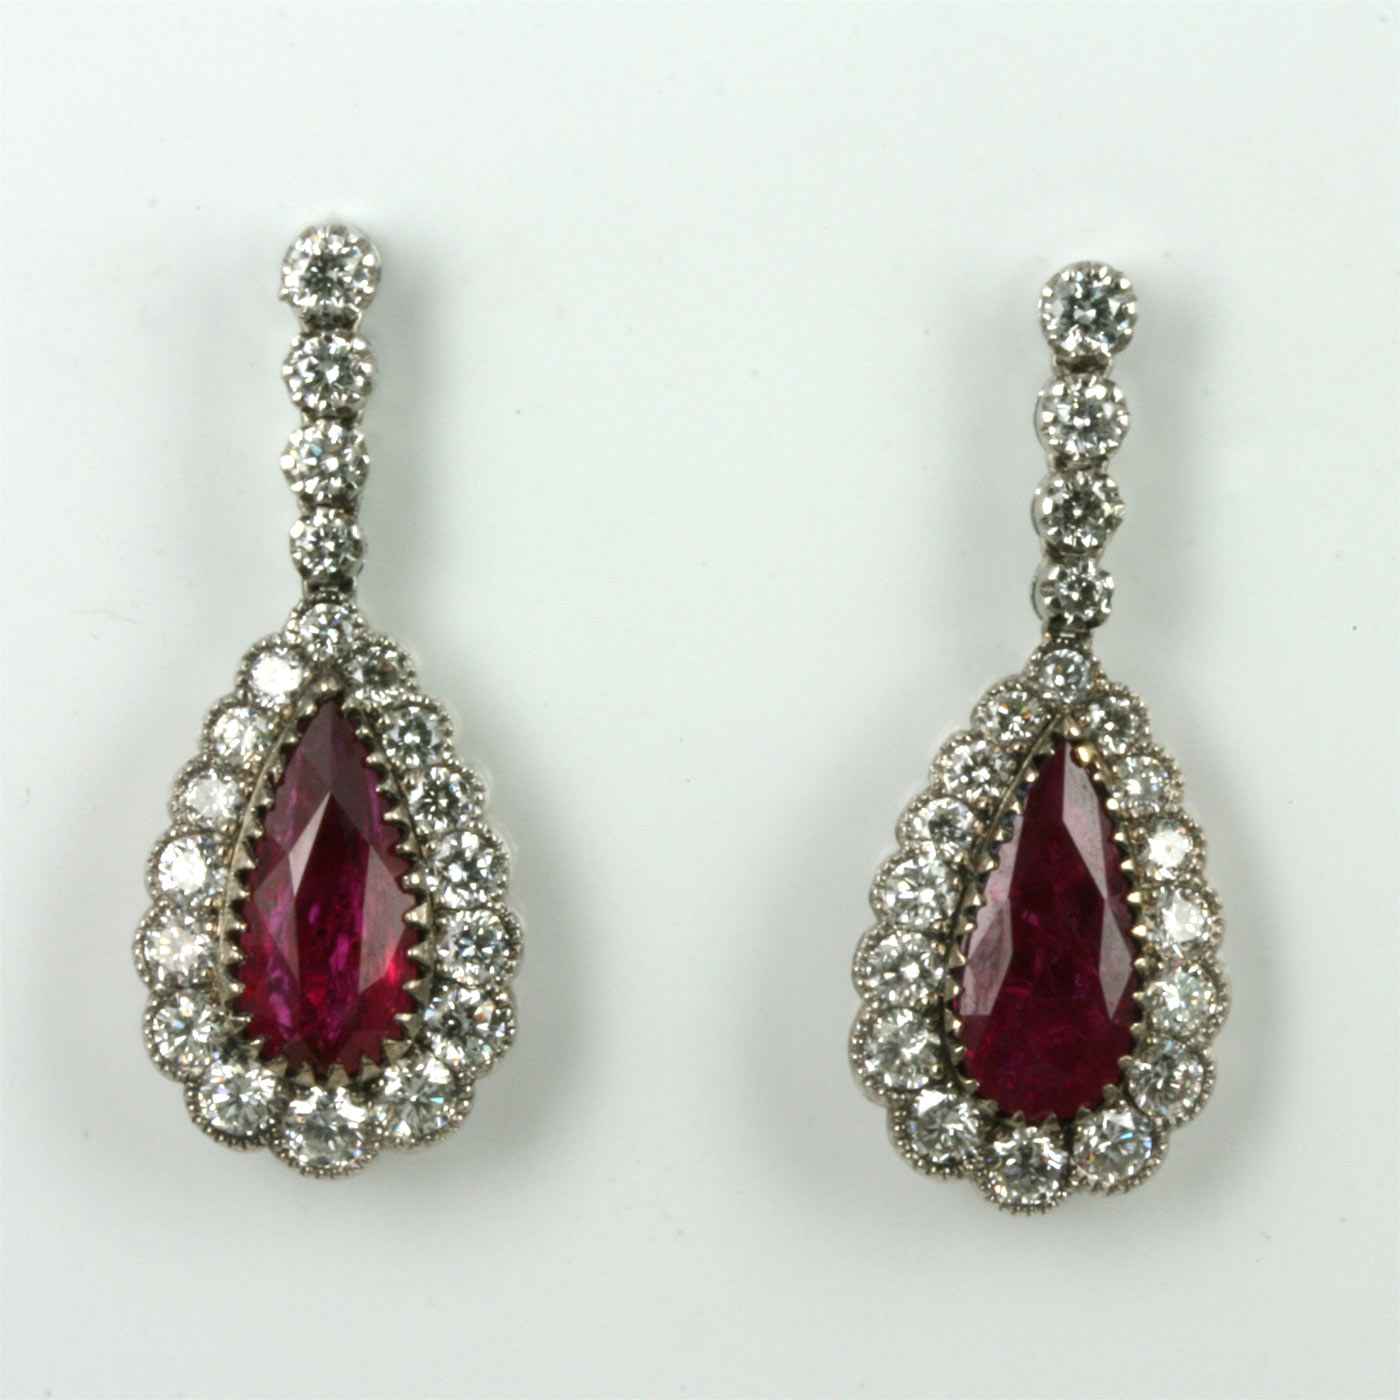 Drop Design Buy Drop Design Ruby And Diamond Earrings Sold Items Sold